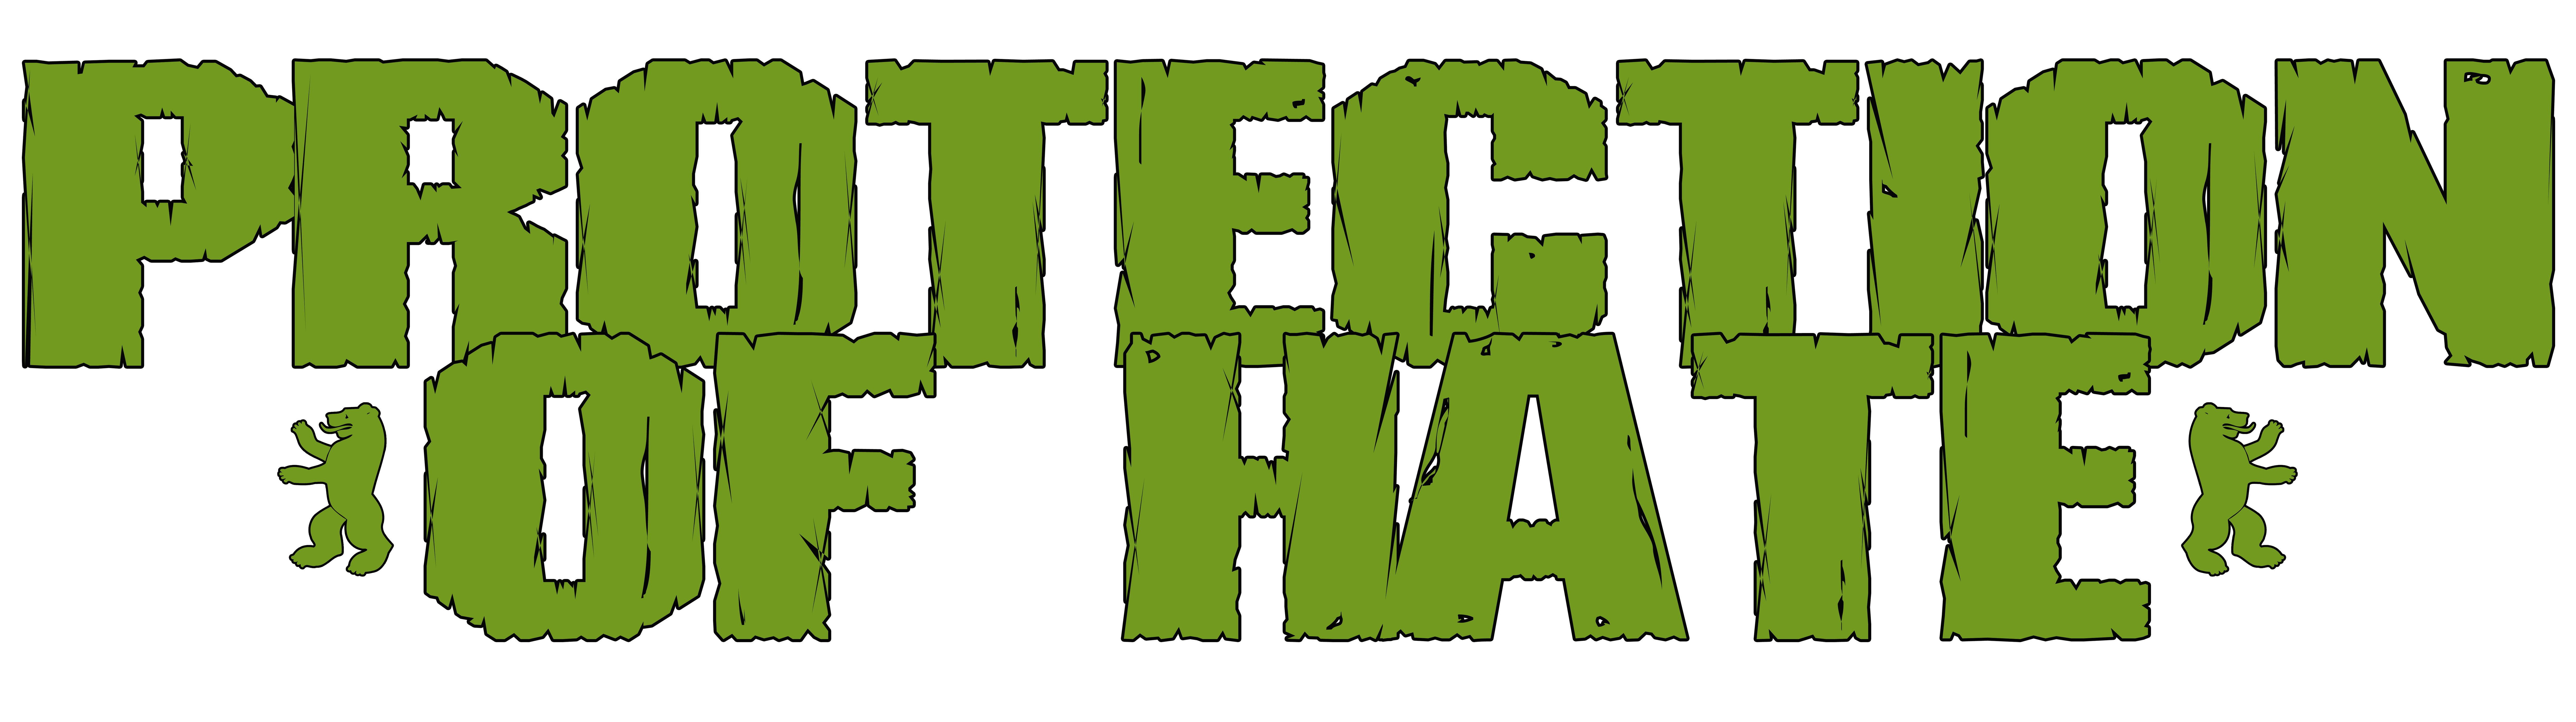 Protection-of-Hate-Logo